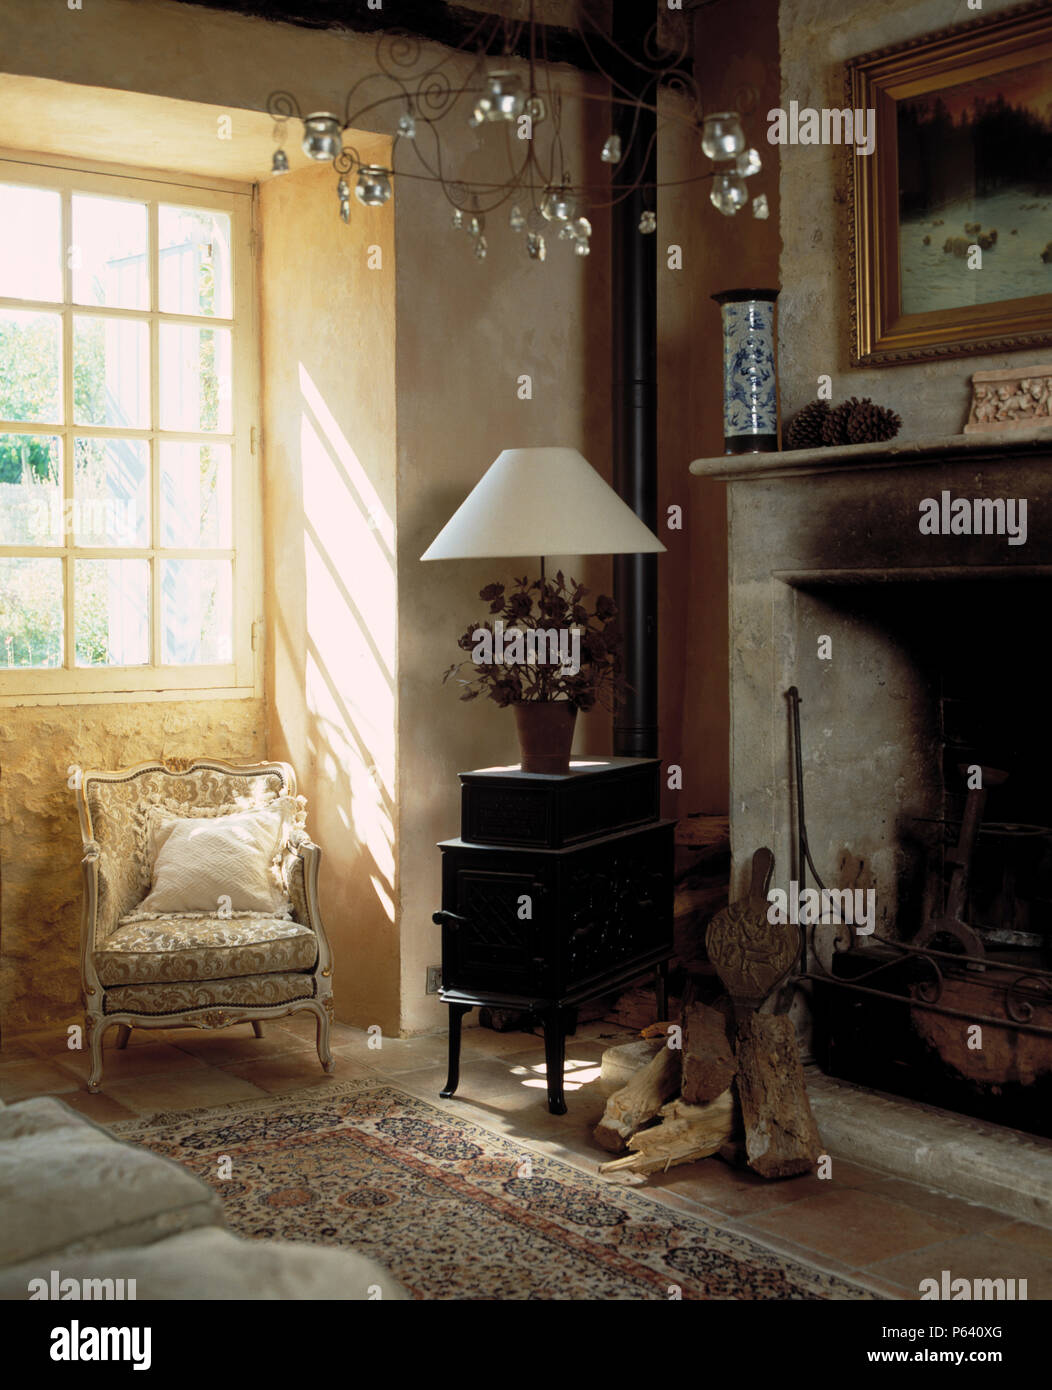 White Table Lamp On Old Cast Iron Stove Beside Stone Fireplace In